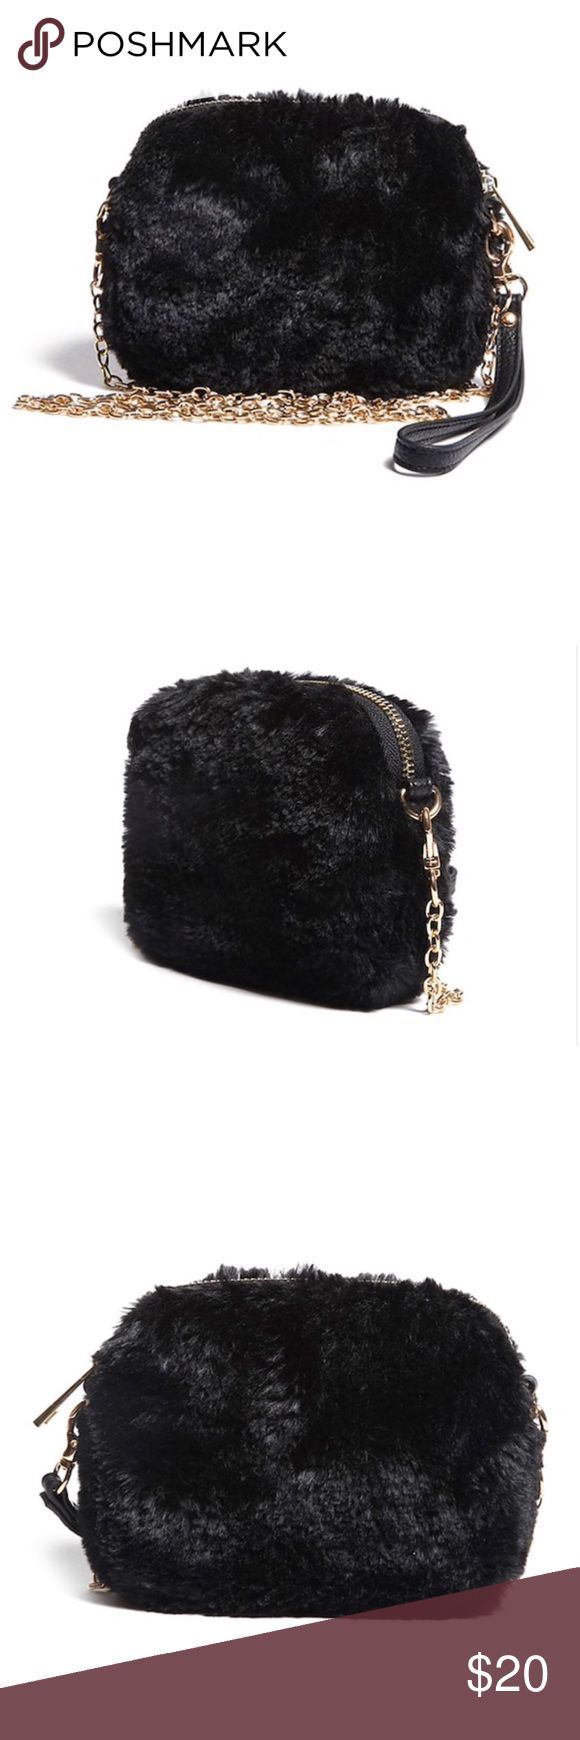 "NWT Faux Fur Mini Crossbody NWT Faux Fur Mini Crossbody   A faux fur mini crossbody featuring a zip-top closure, a detachable chainlink shoulder strap, a detachable lobster clasp wristlet strap, and an interior zip pocket.  Measurements: - Height: 5"" - Width: 6.25"" - Depth: 2"" Bags"